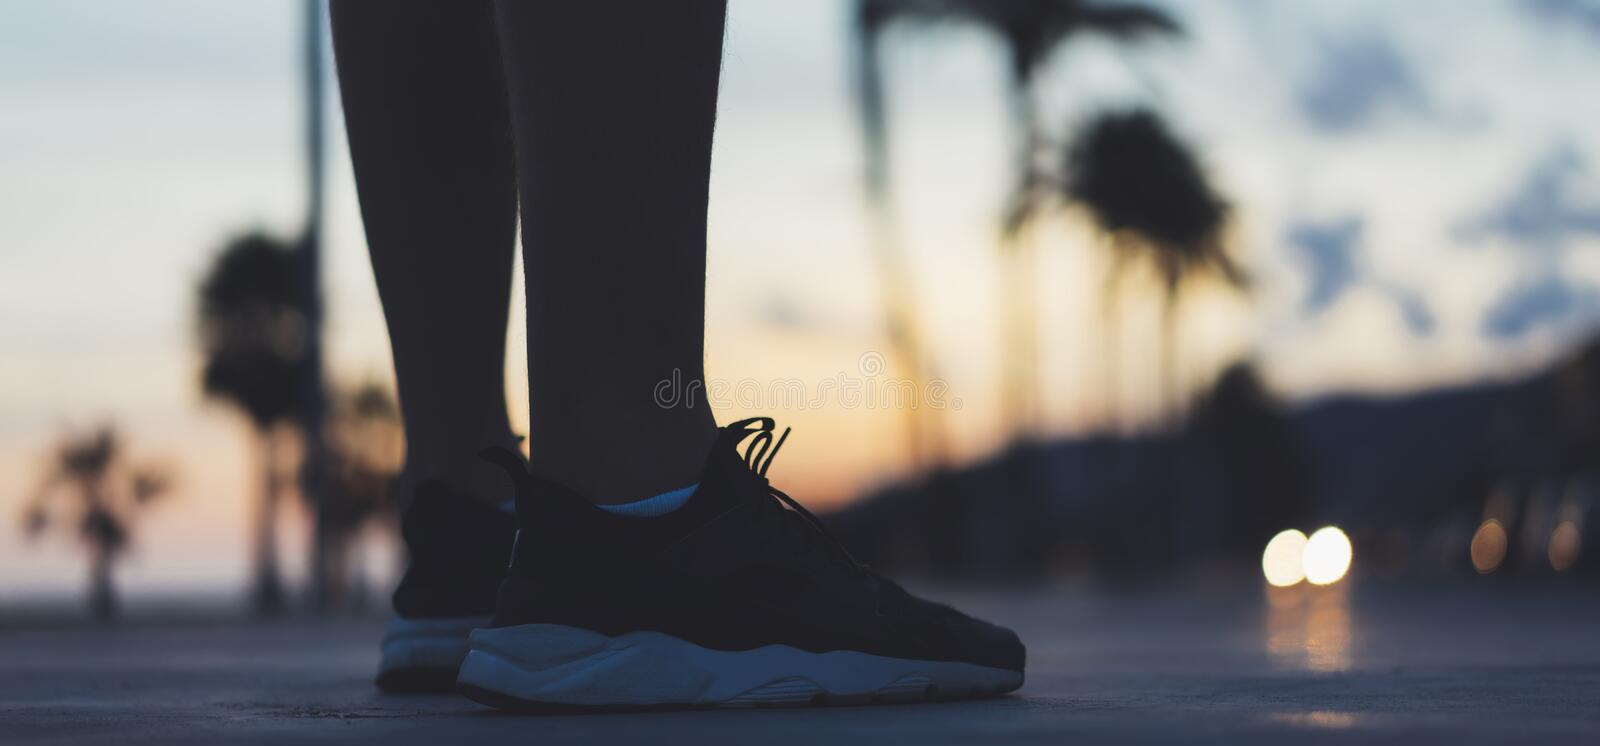 Male feet with sneakers close up on background sunset or sunrise nature outdoor, sports man running marathon, workout style royalty free stock photography